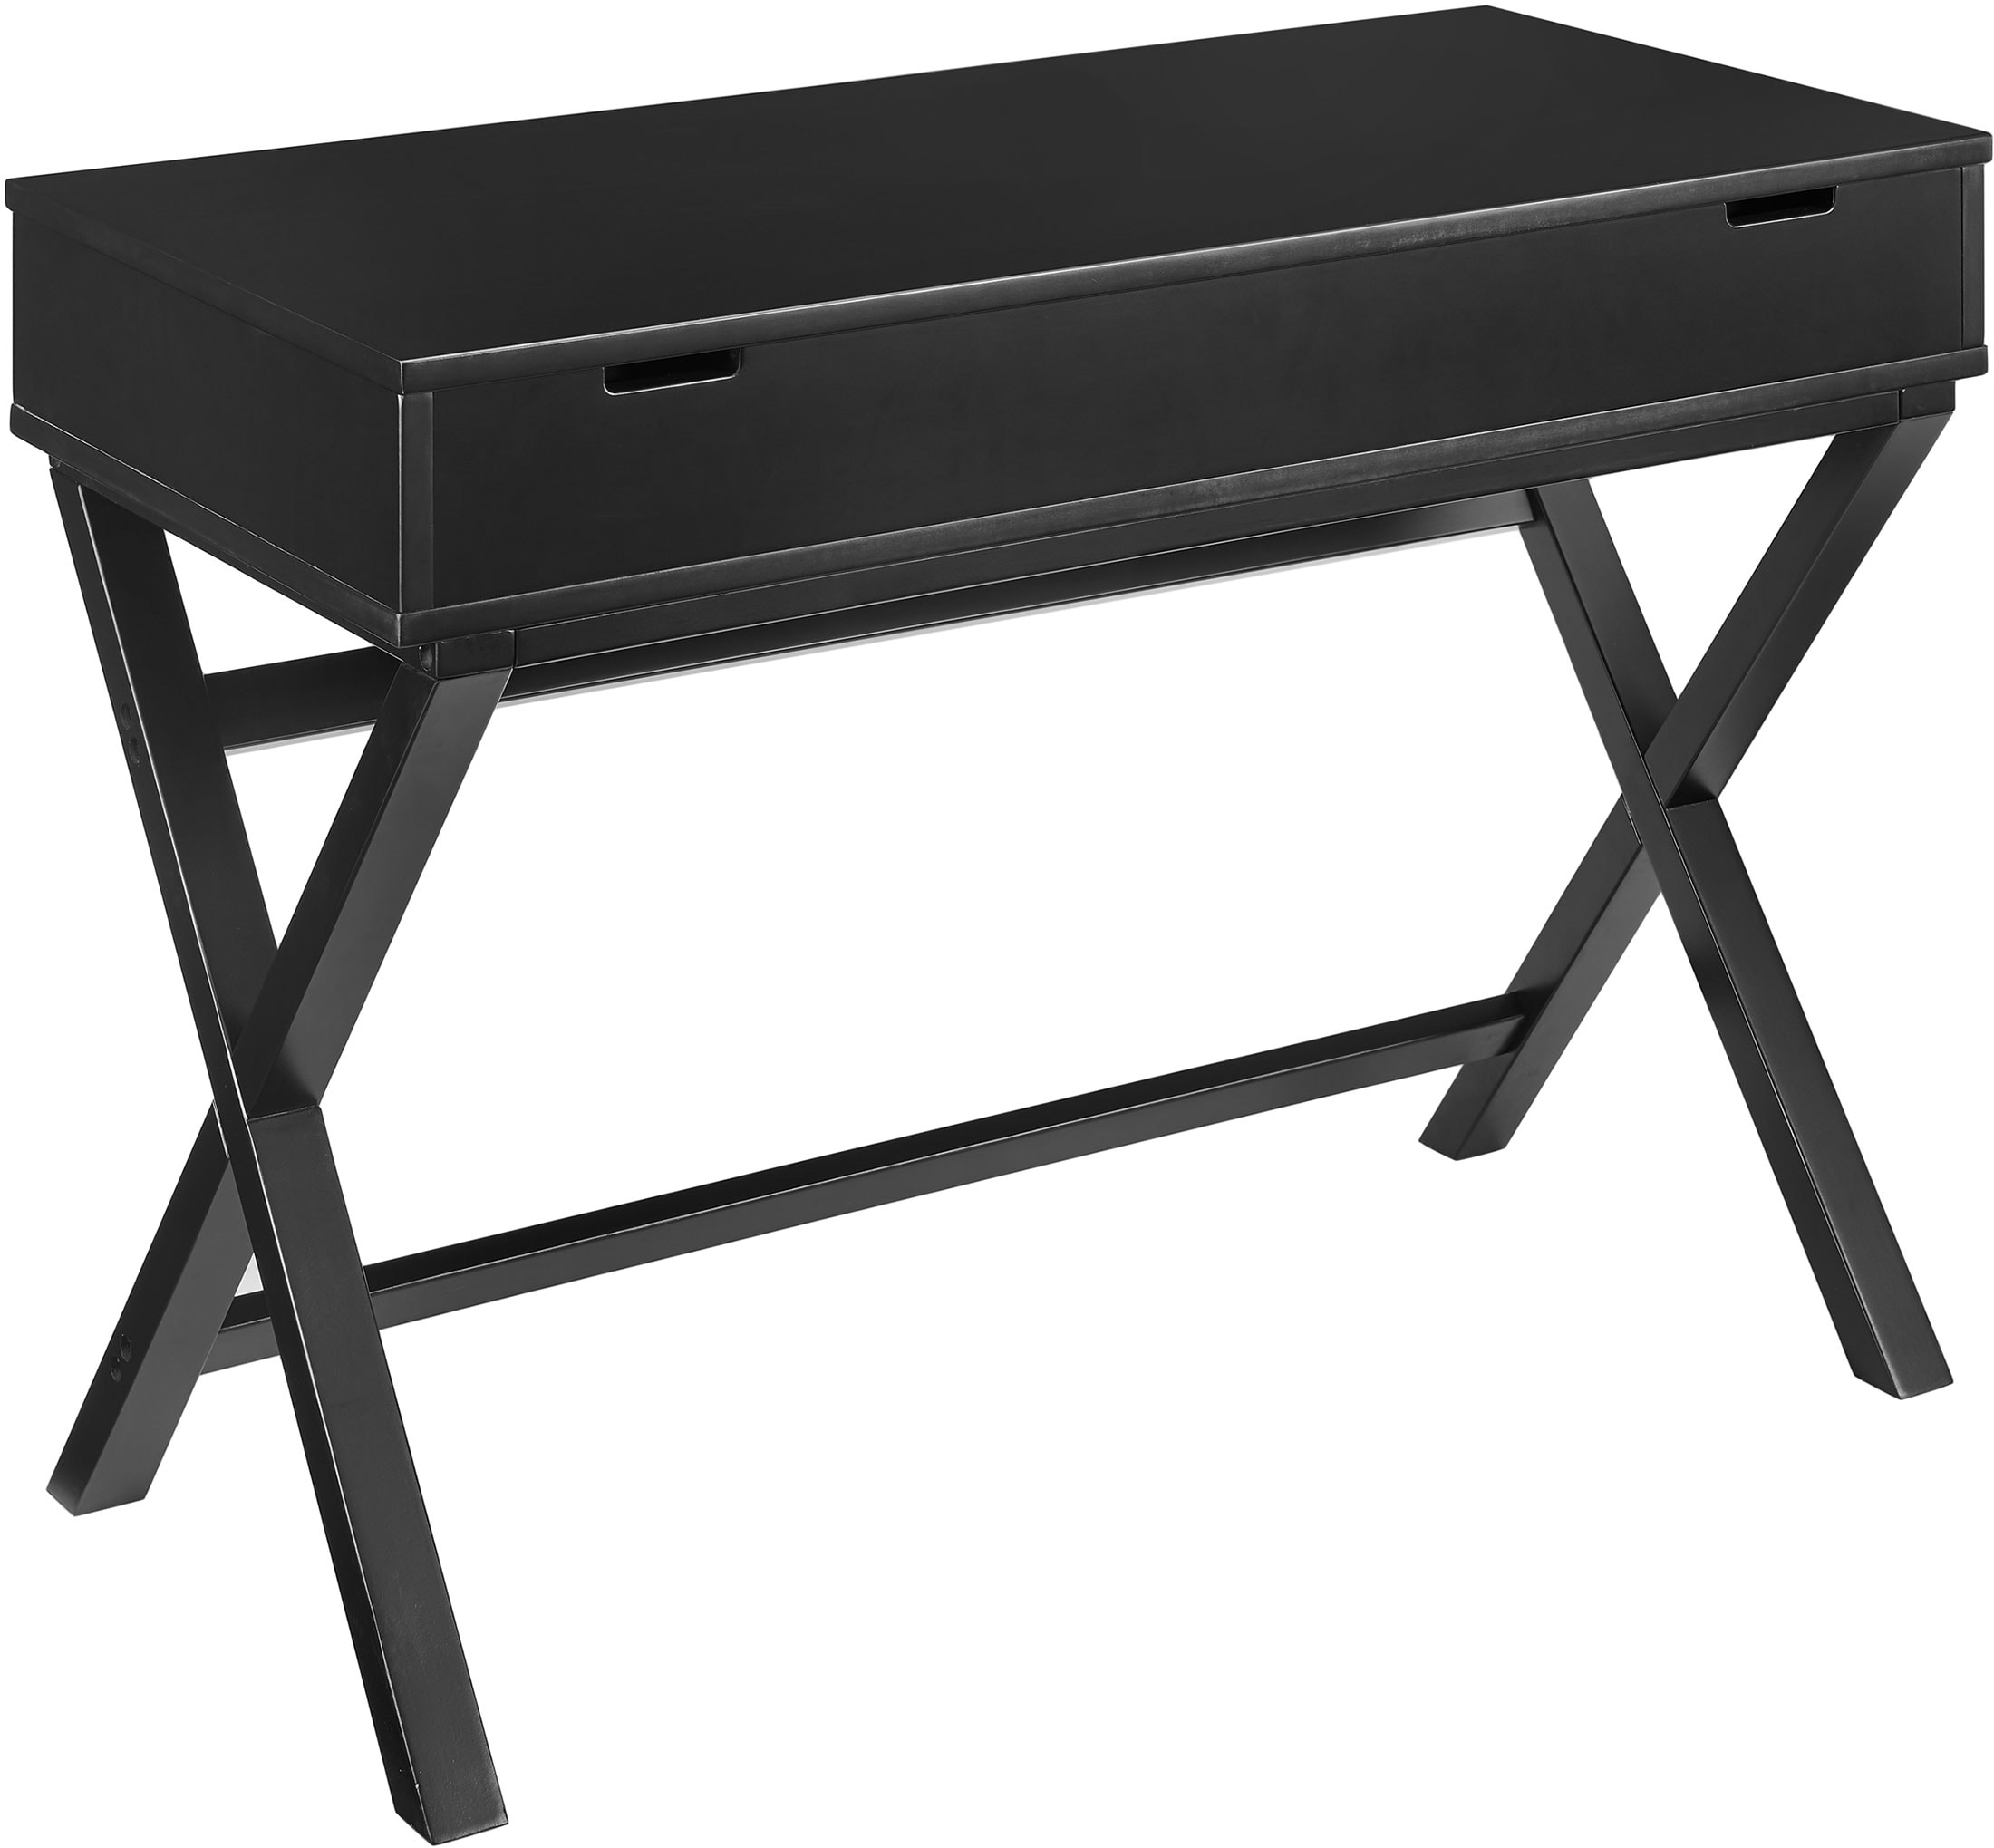 Home Office Furniture - Lacey Lift-Top Desk